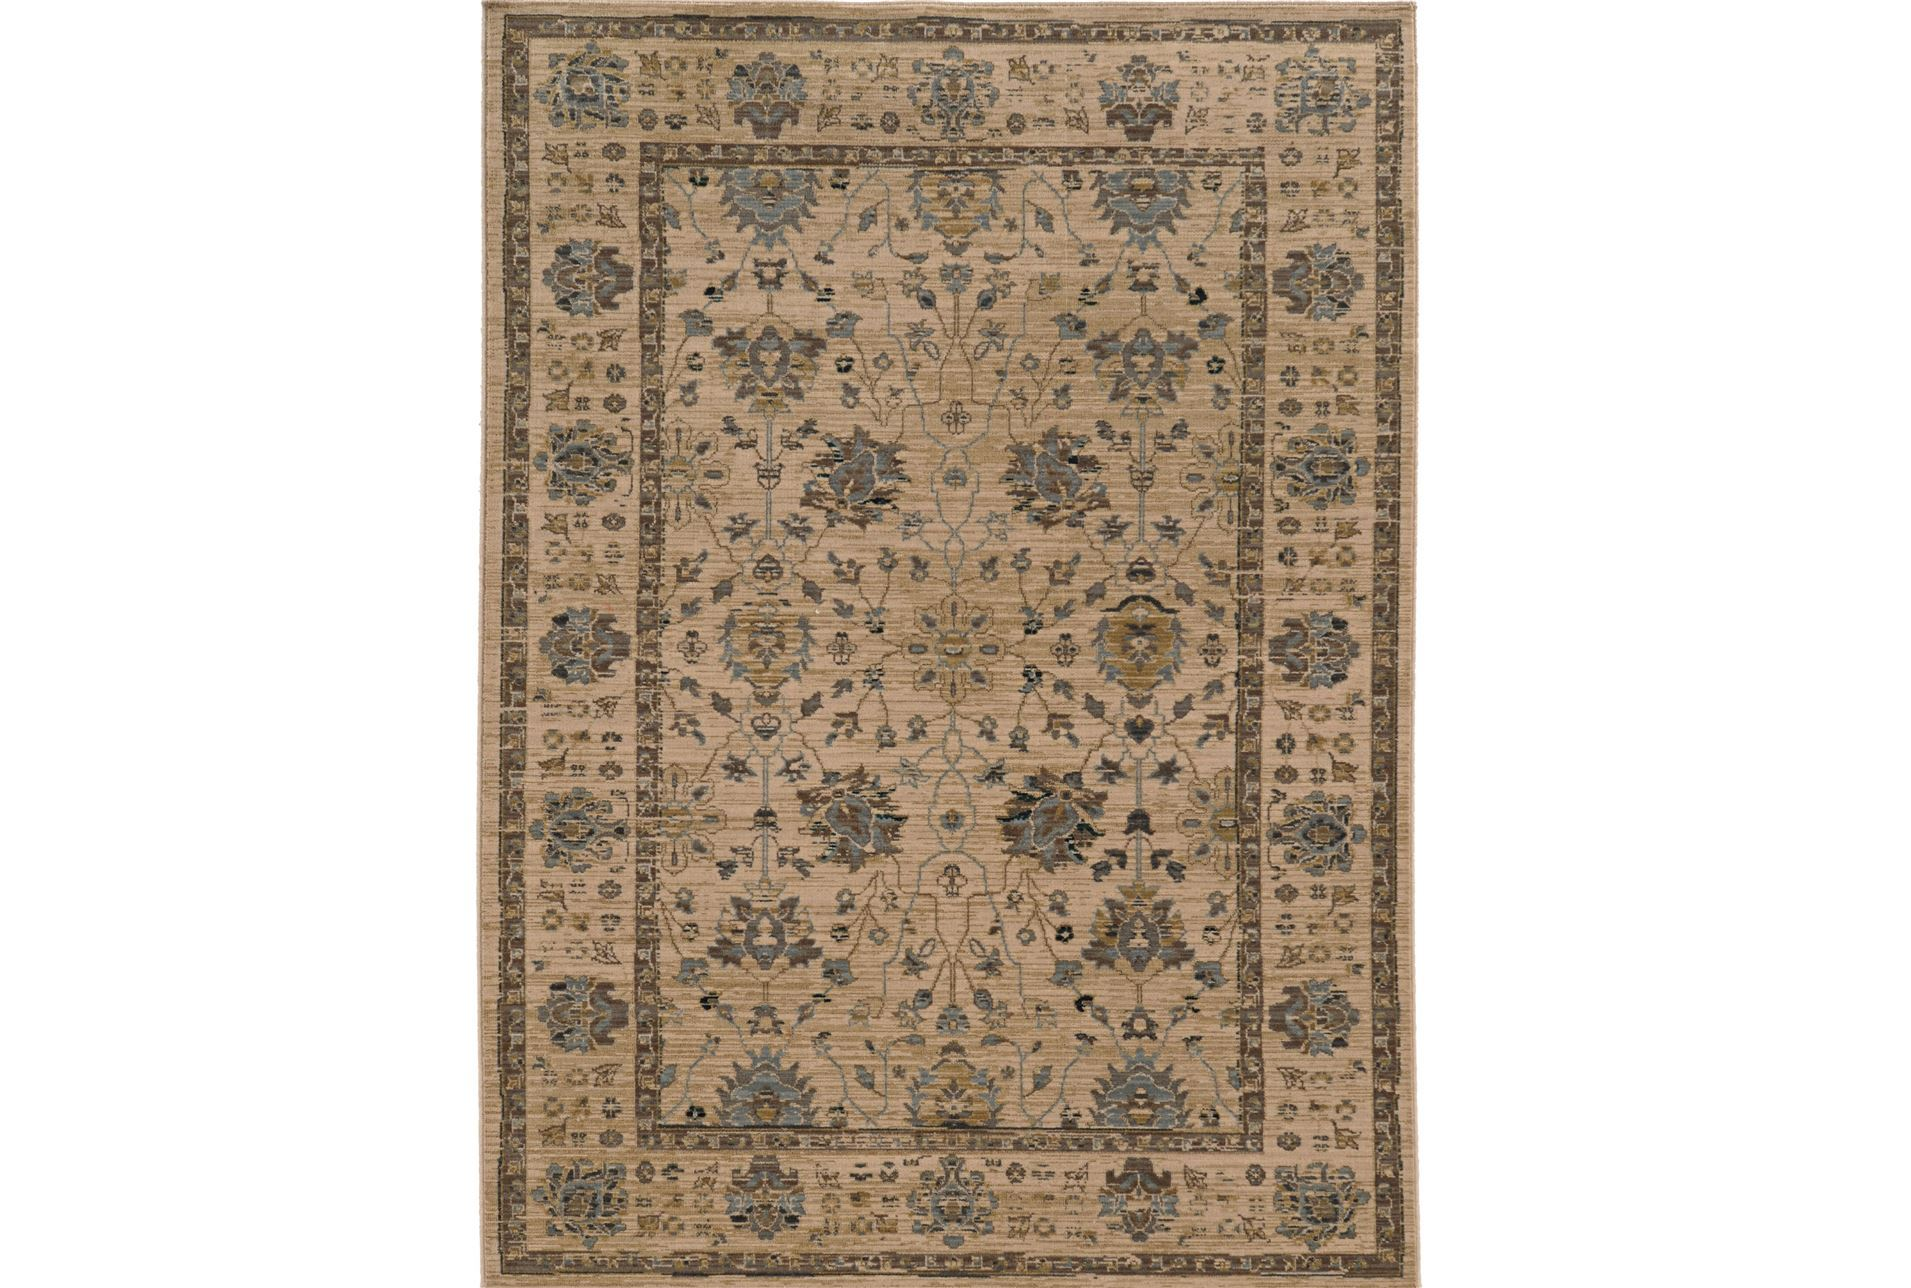 94x130 rug carrington traditions living spaces for Living spaces rugs